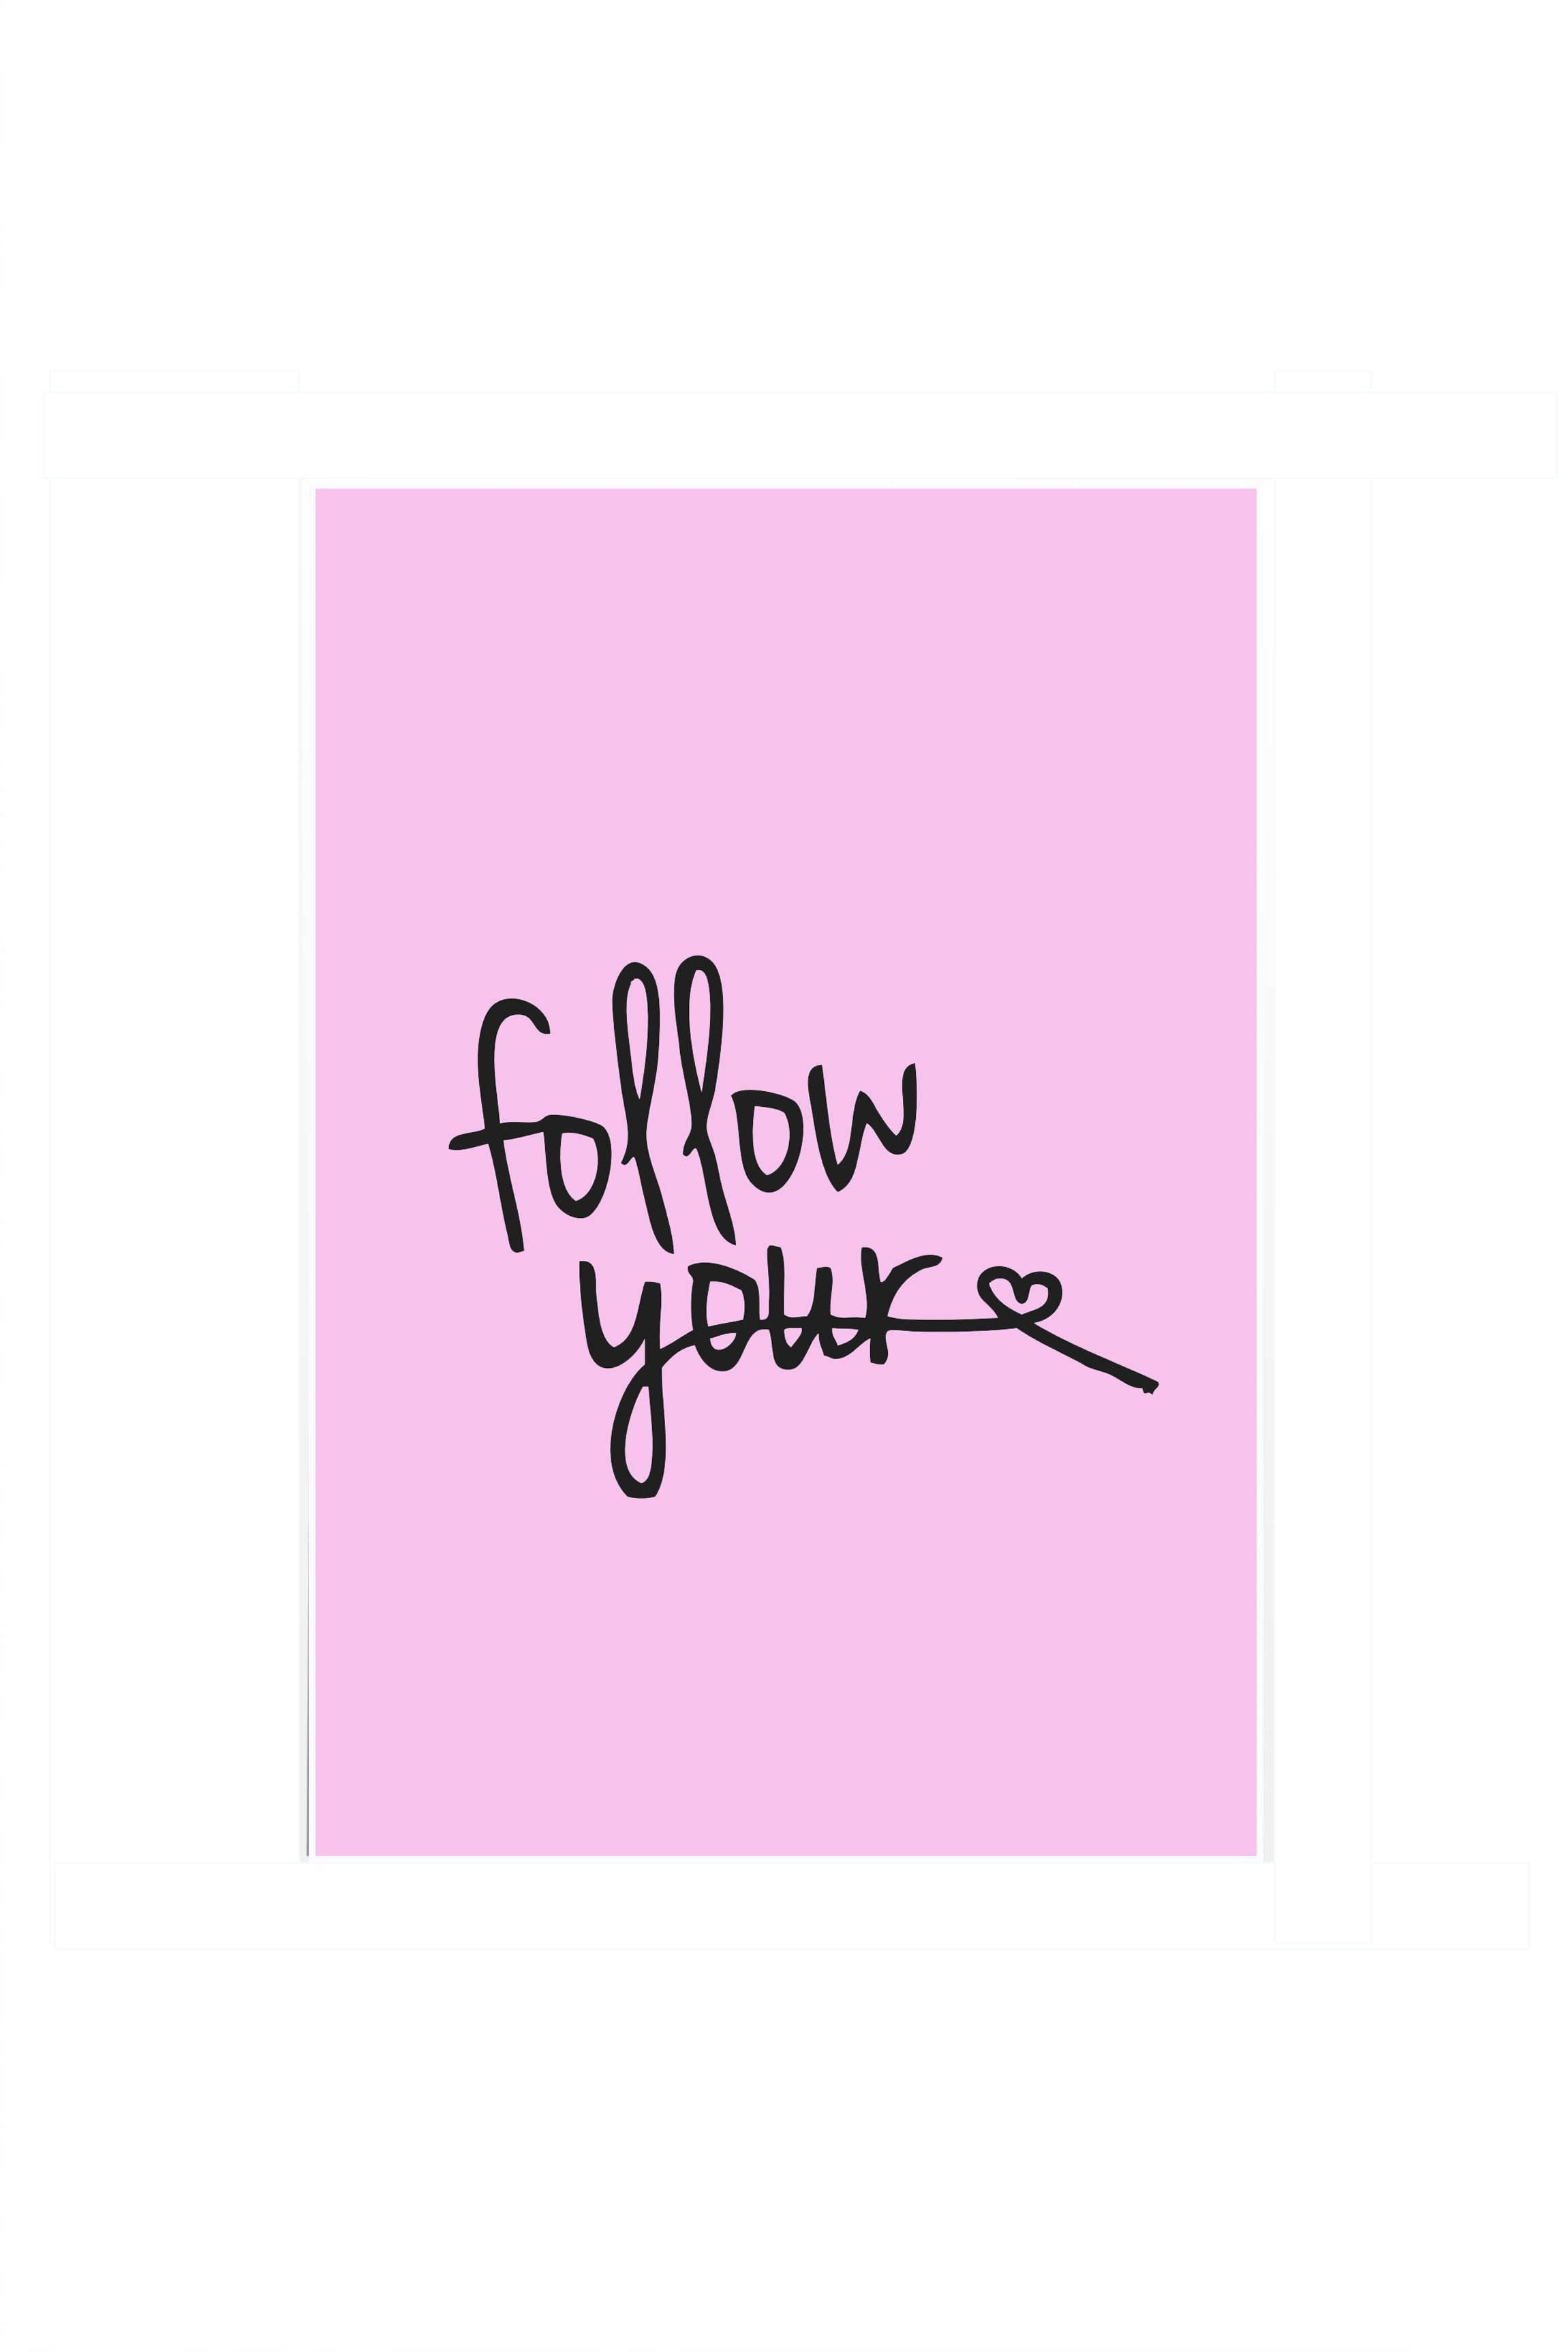 Poster follow your heart quotes popular themes designs more views thecheapjerseys Image collections